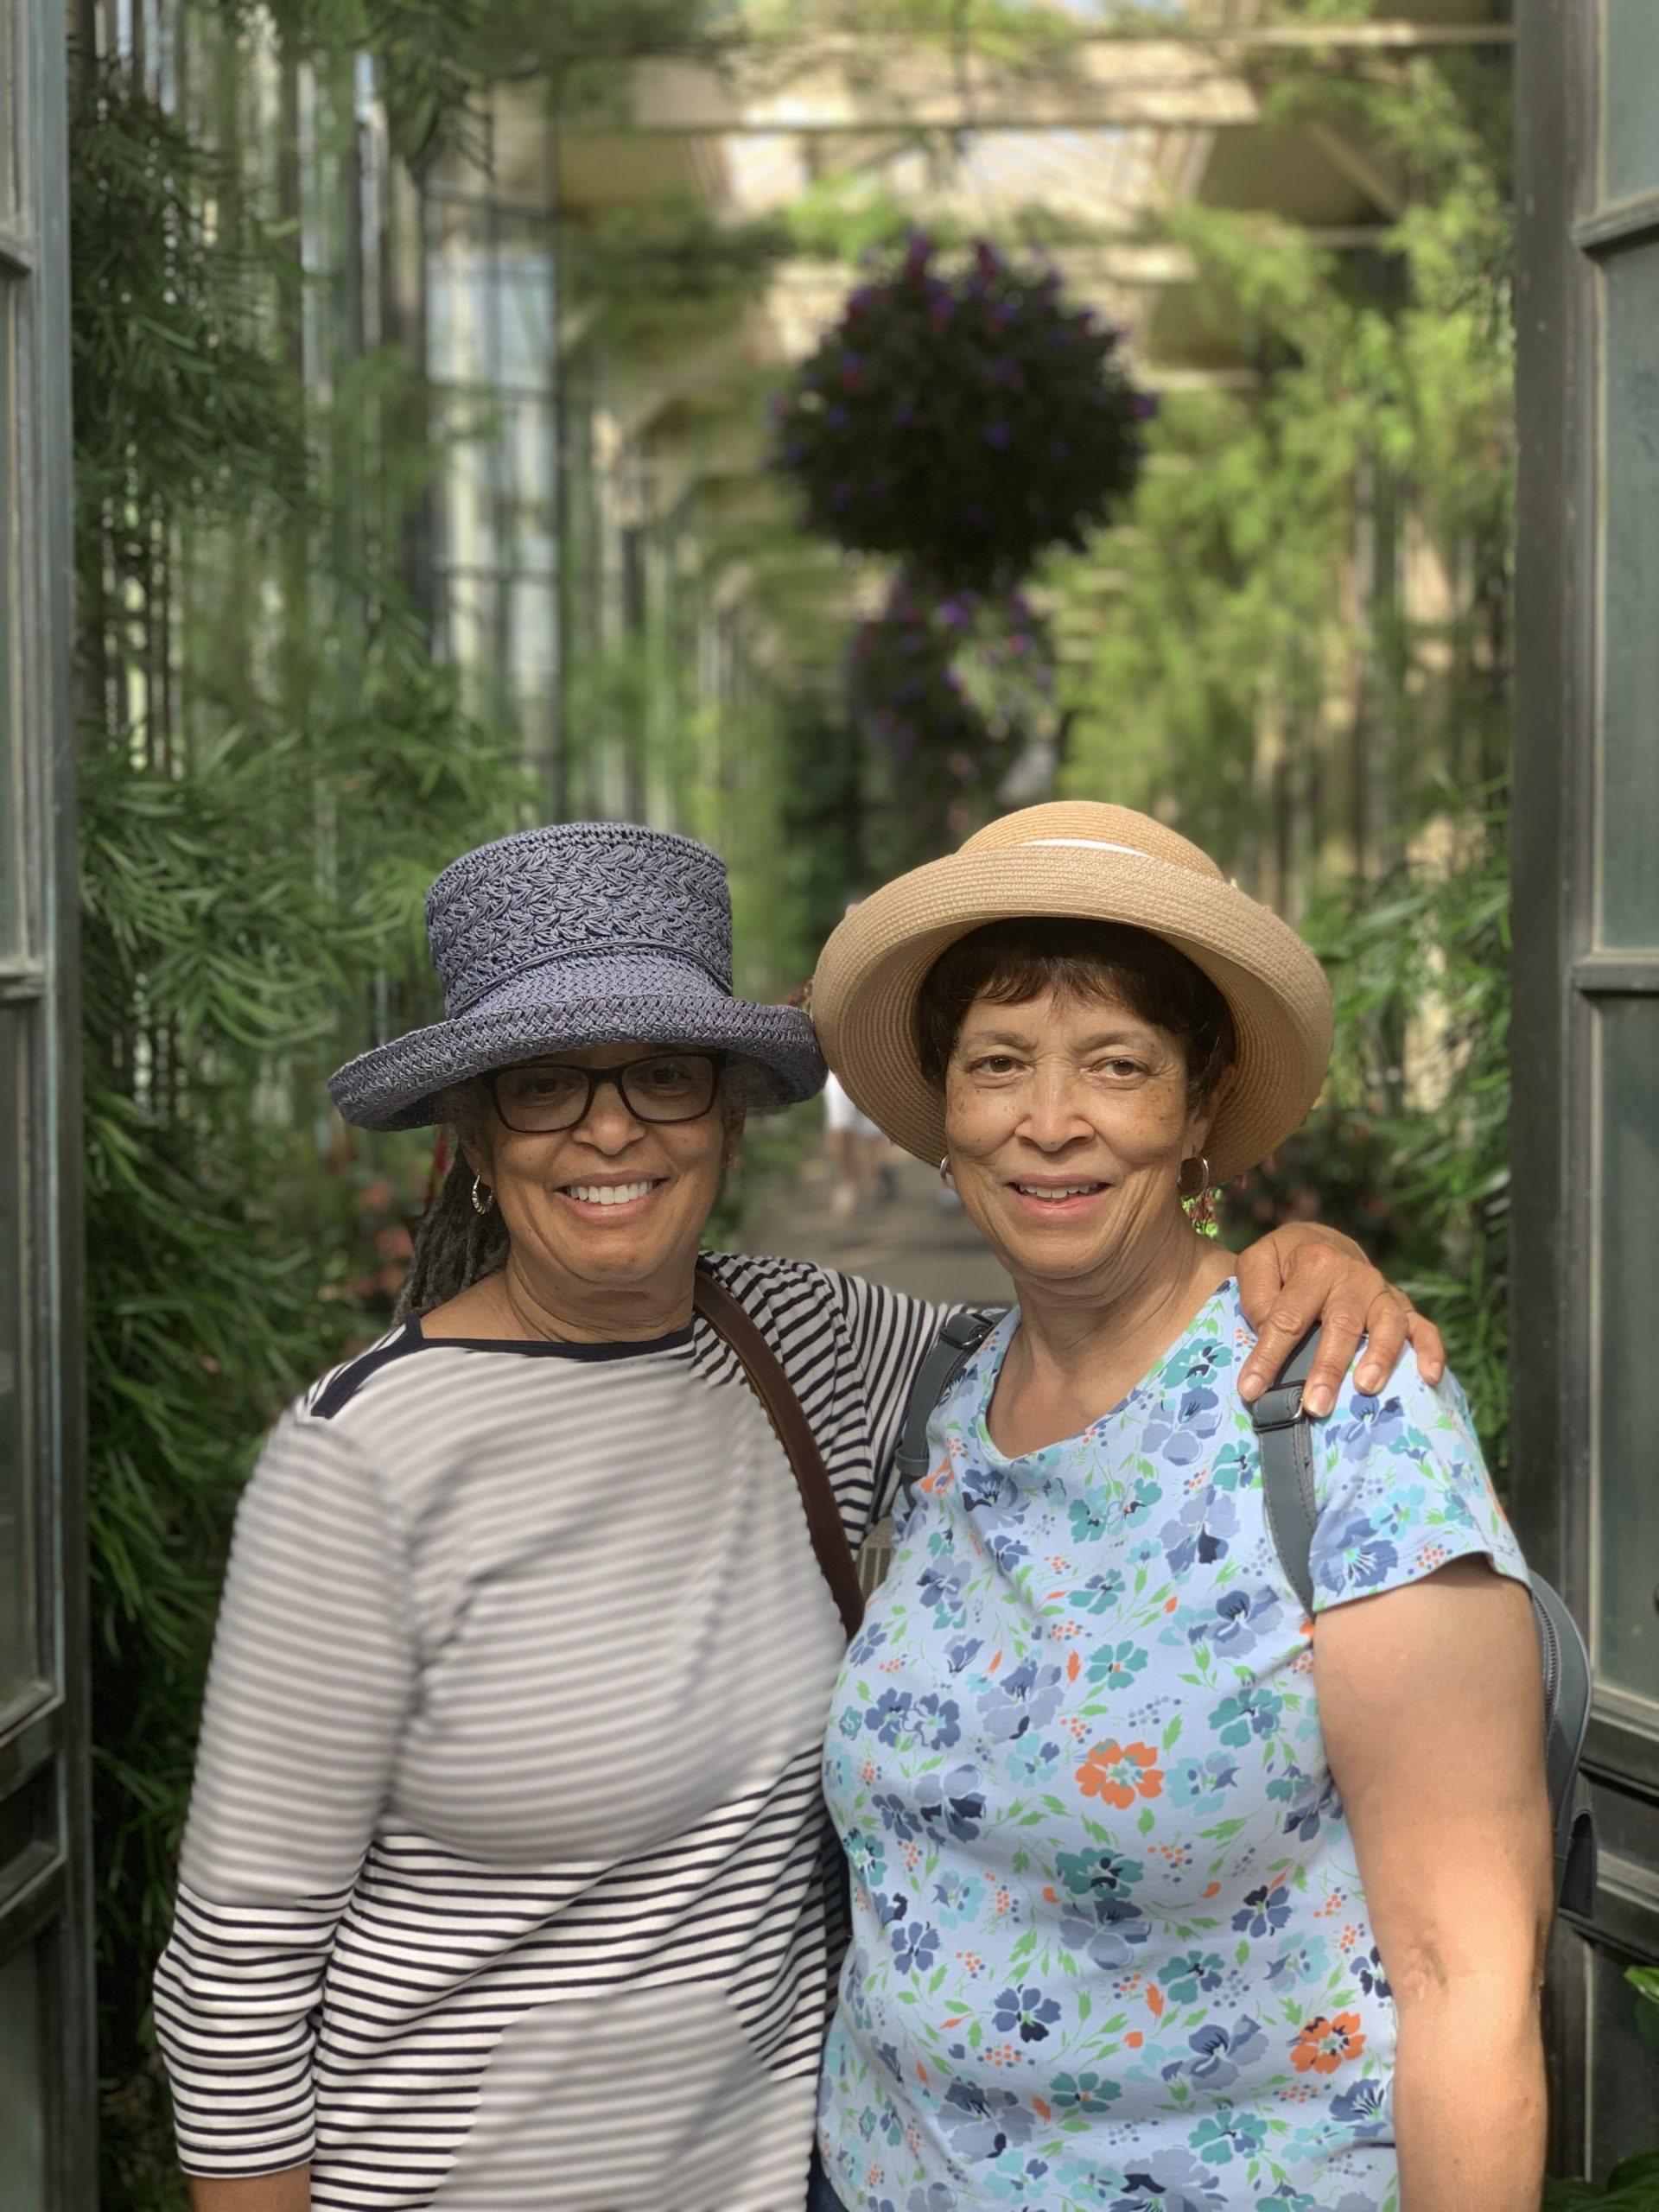 My aunts at the gardens